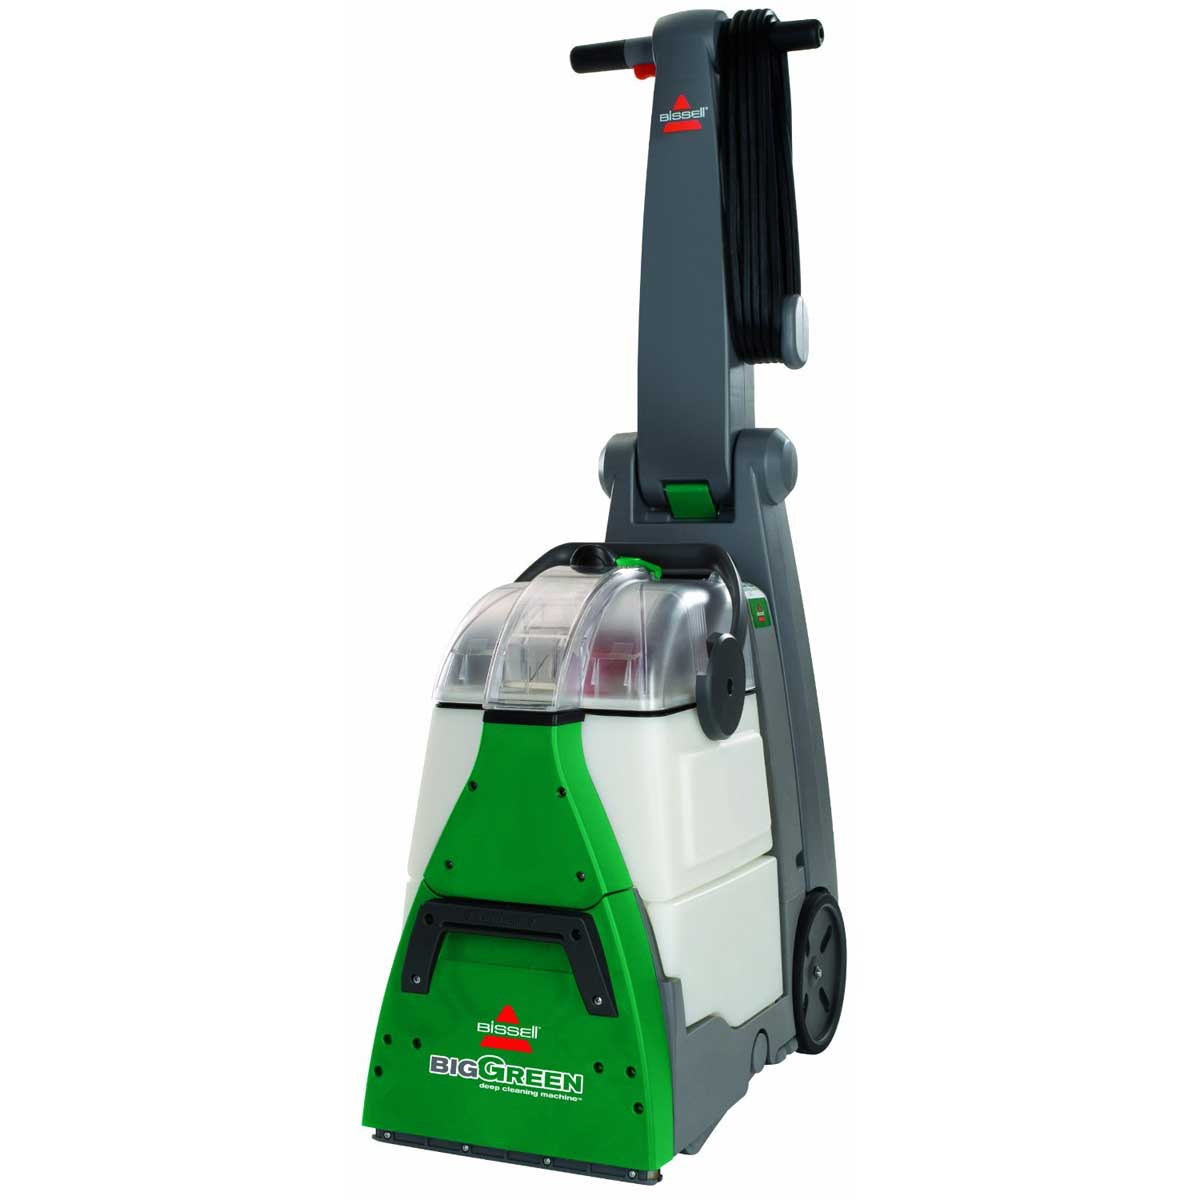 Bissell Carpet Cleaner Images & Pictures - Becuo